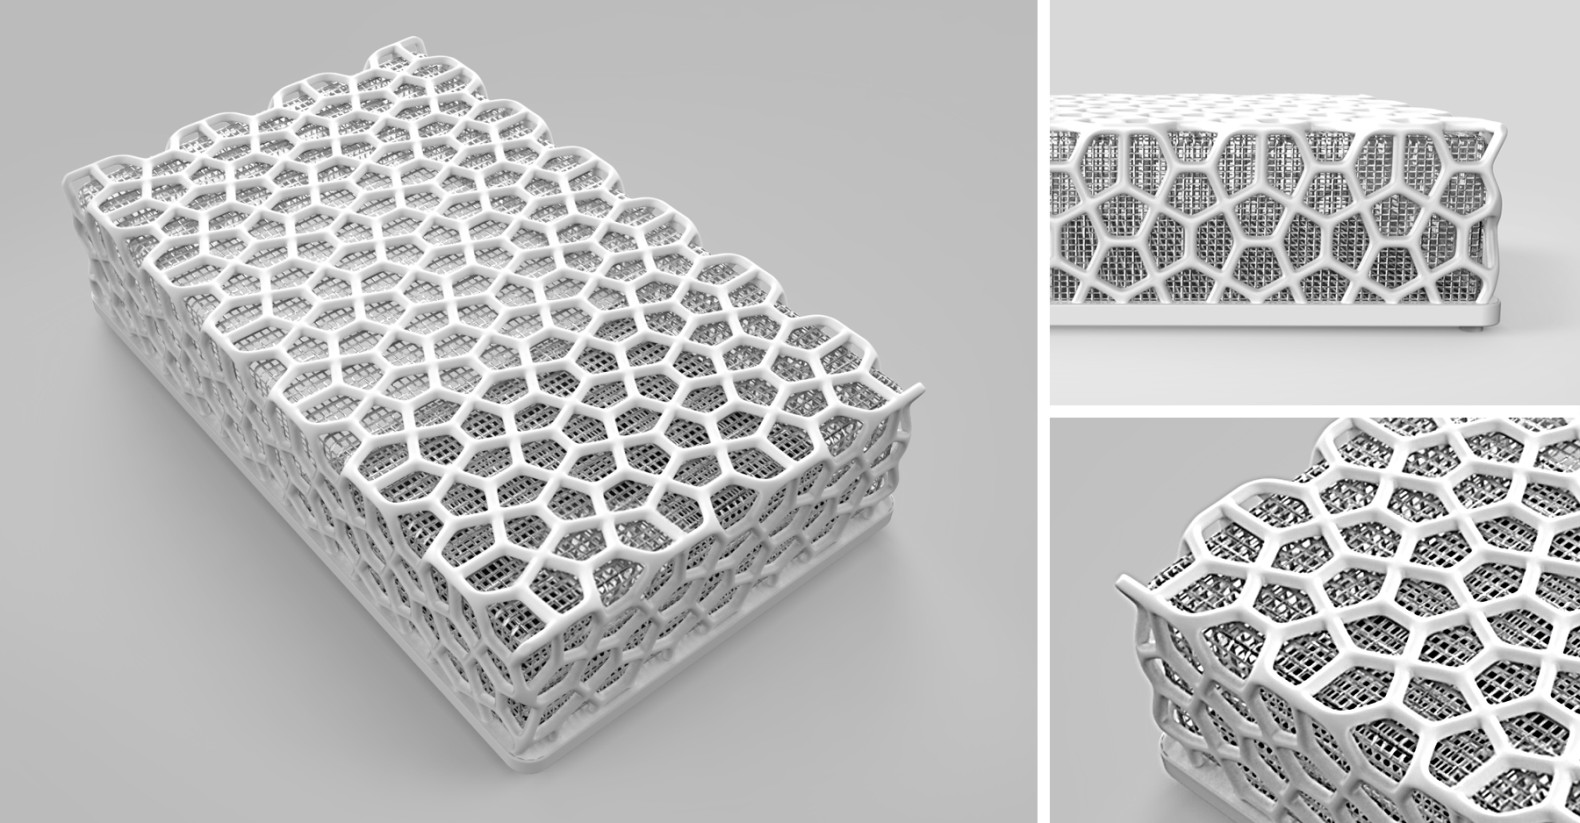 Ashcroft Design proposes a hard drive cooling cover made from